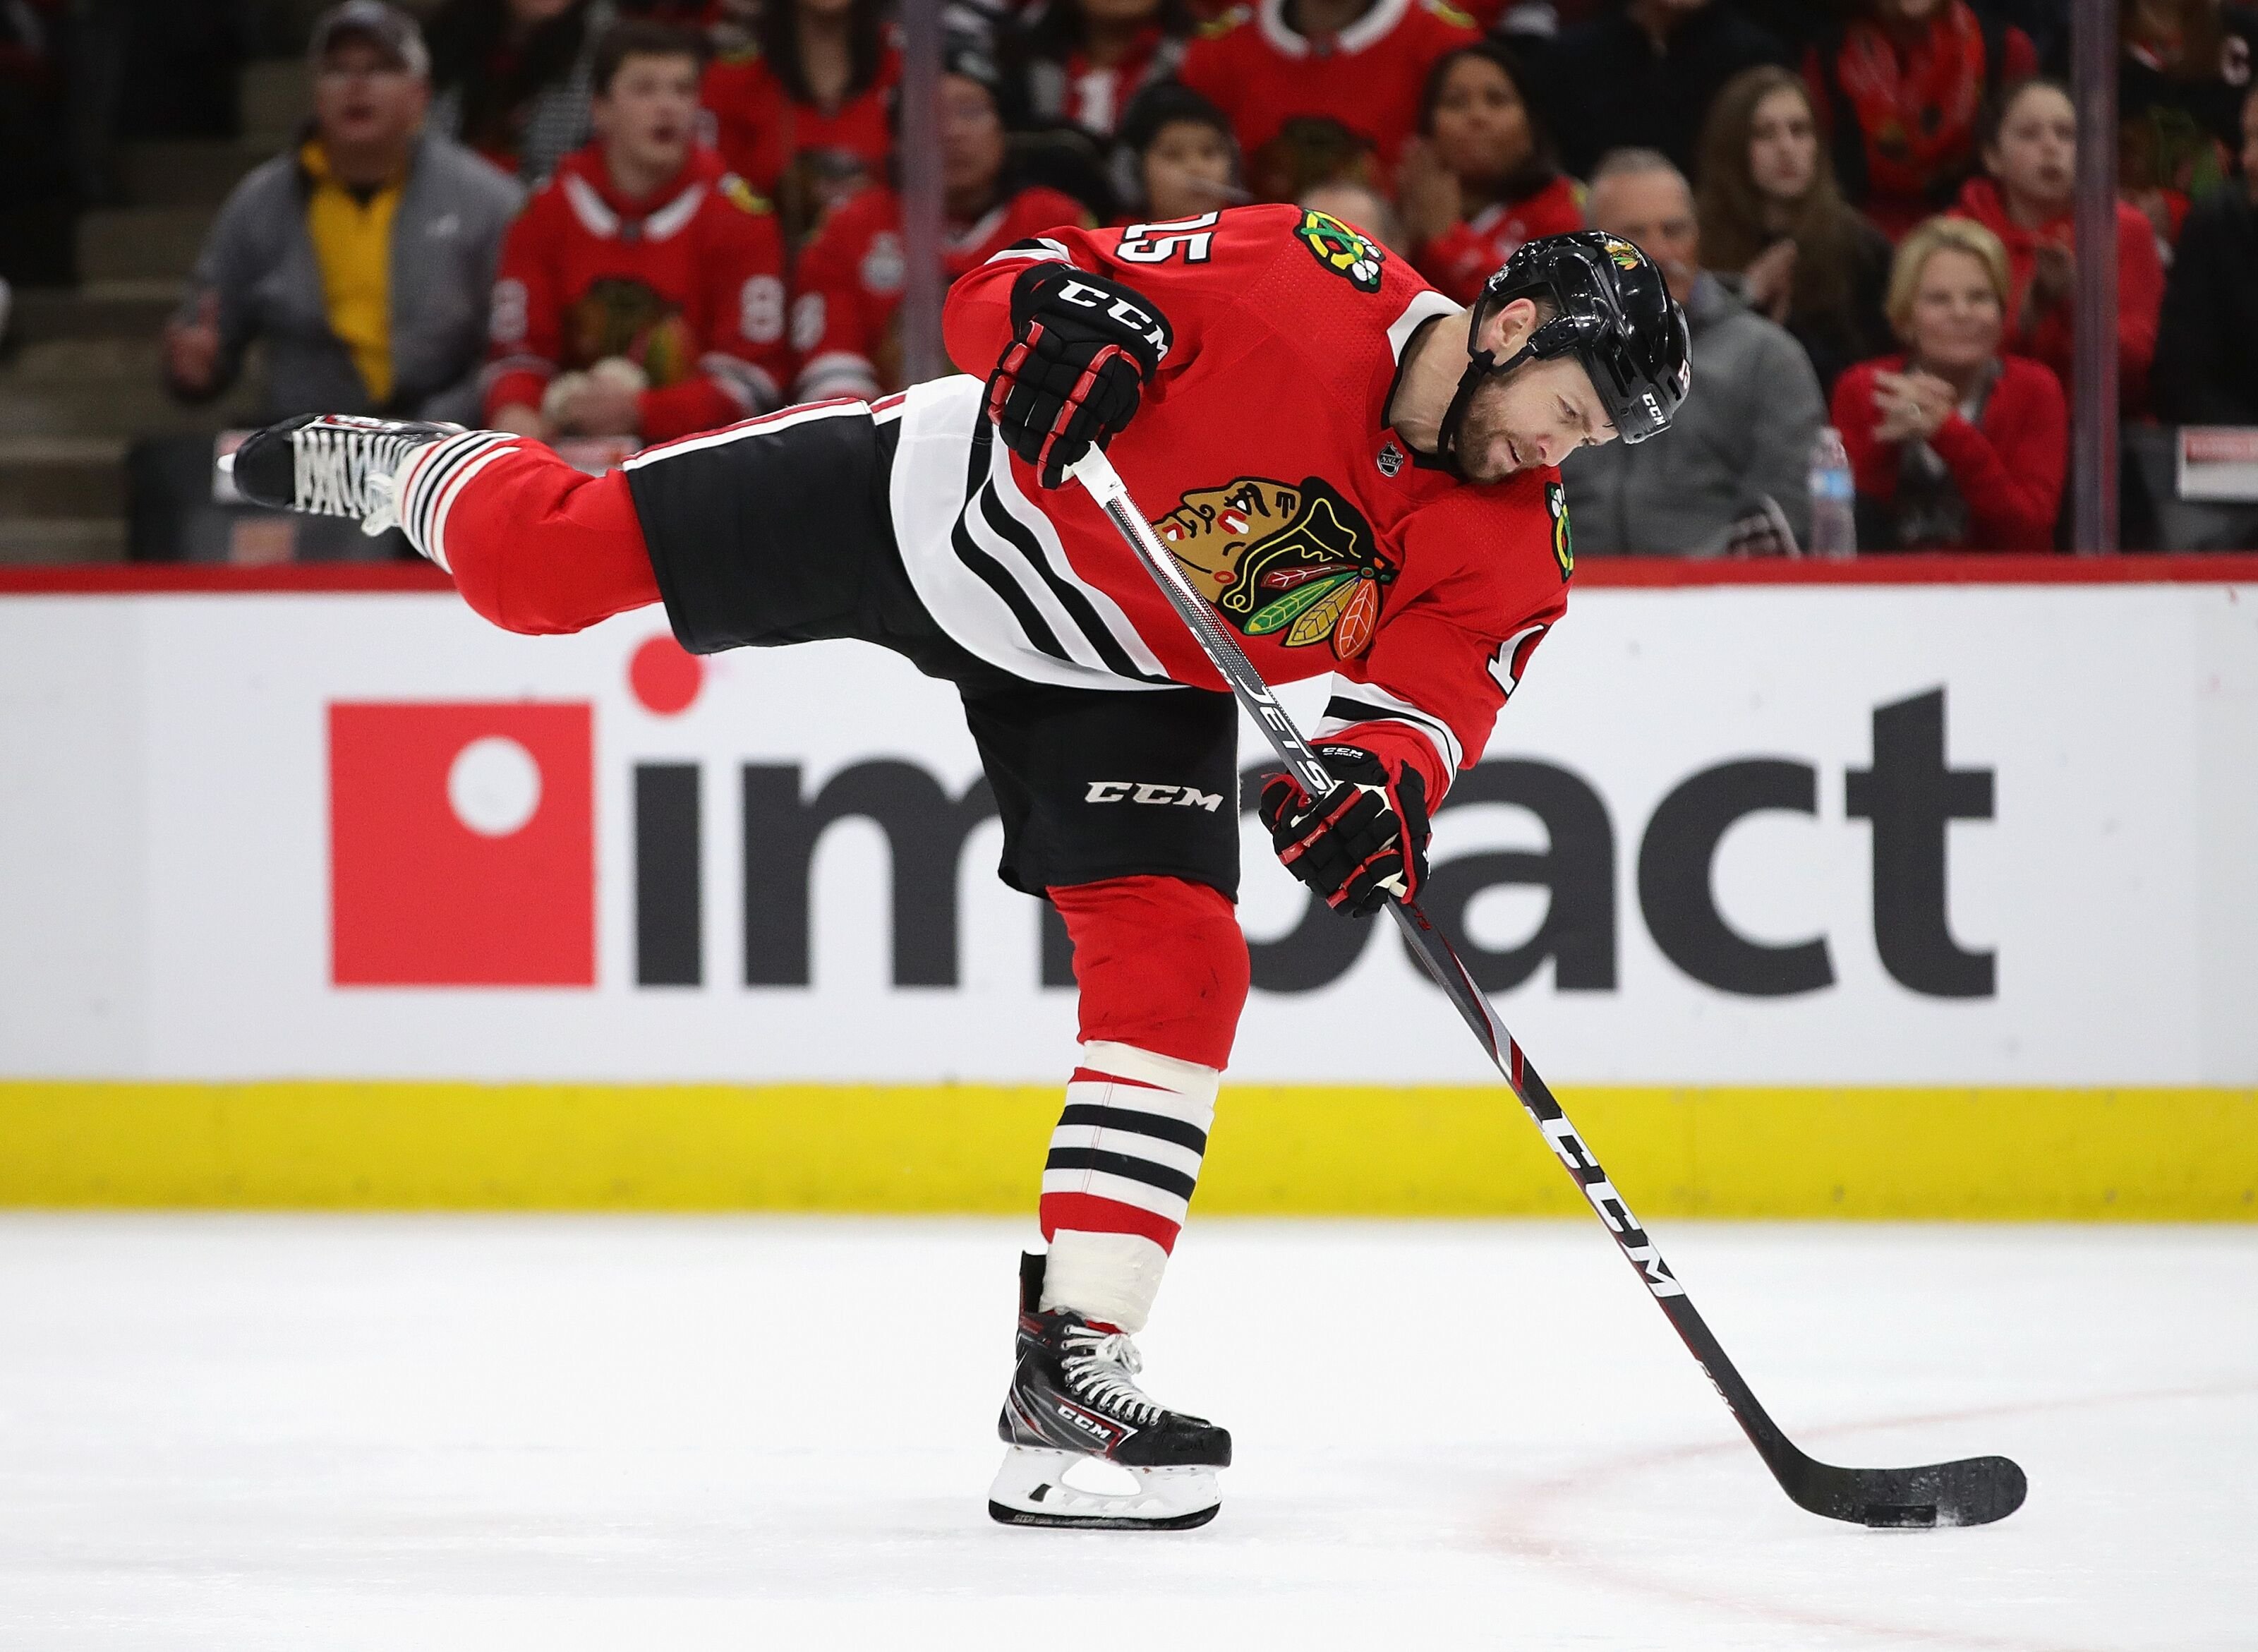 Chicago Blackhawks: Fourth line leads the way this time